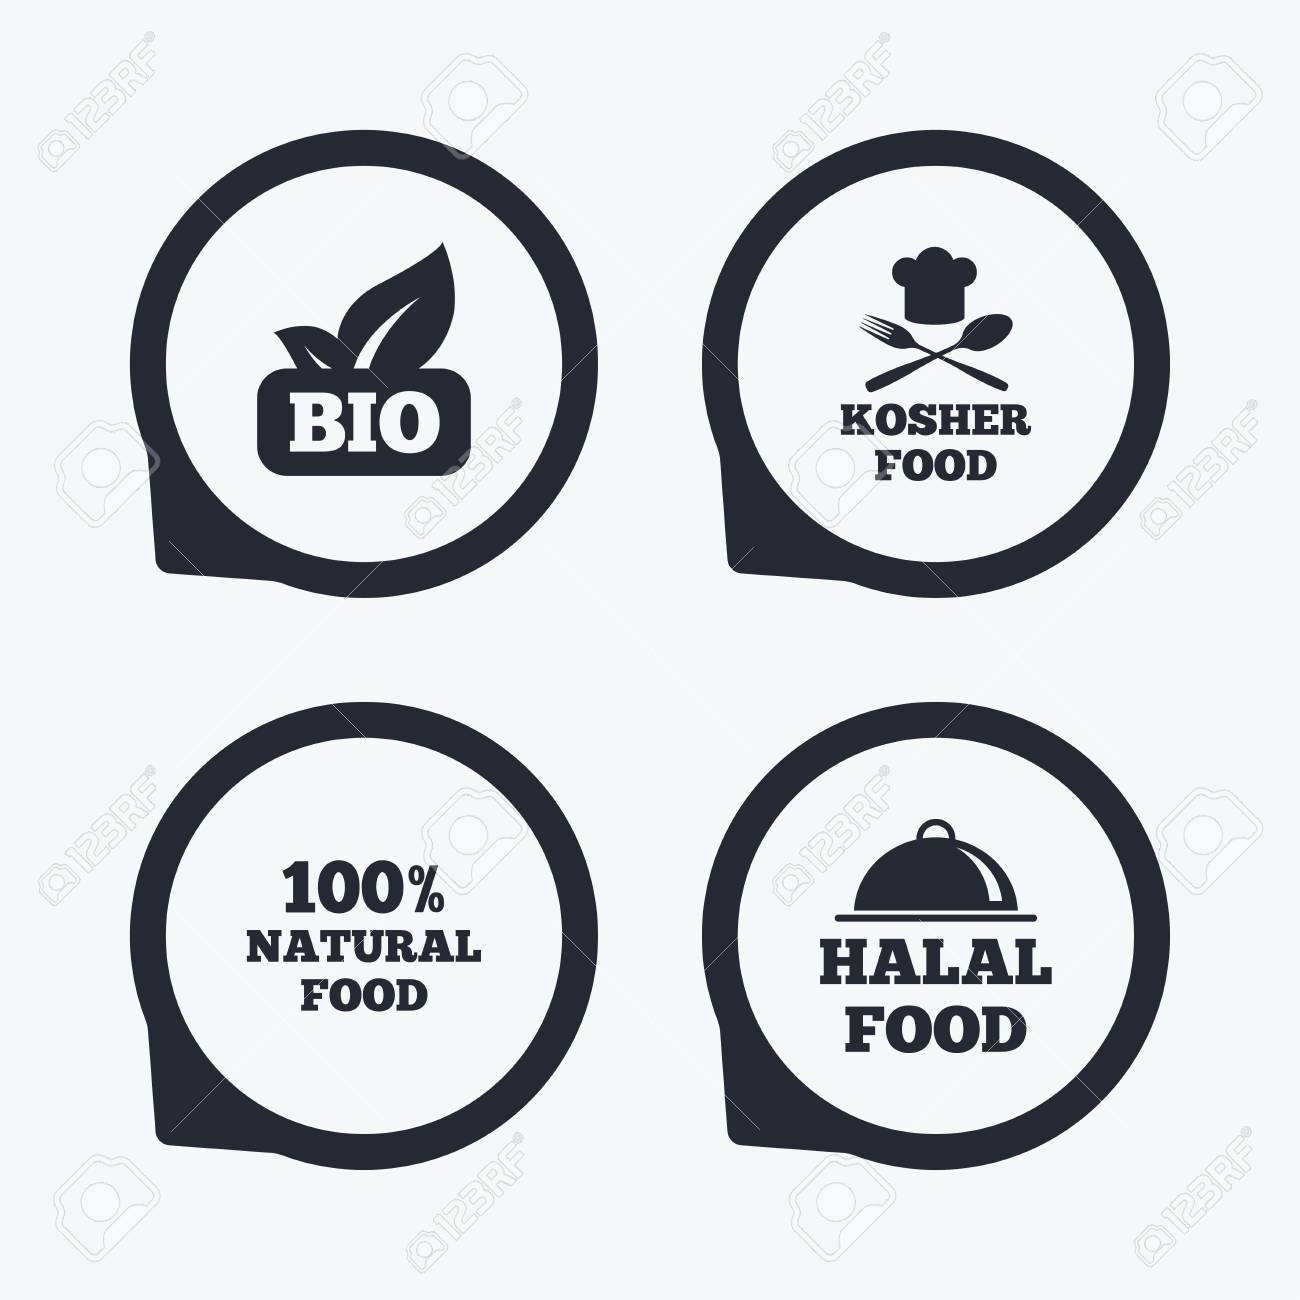 100 Natural Bio Food Icons Halal And Kosher Signs Chief Hat With